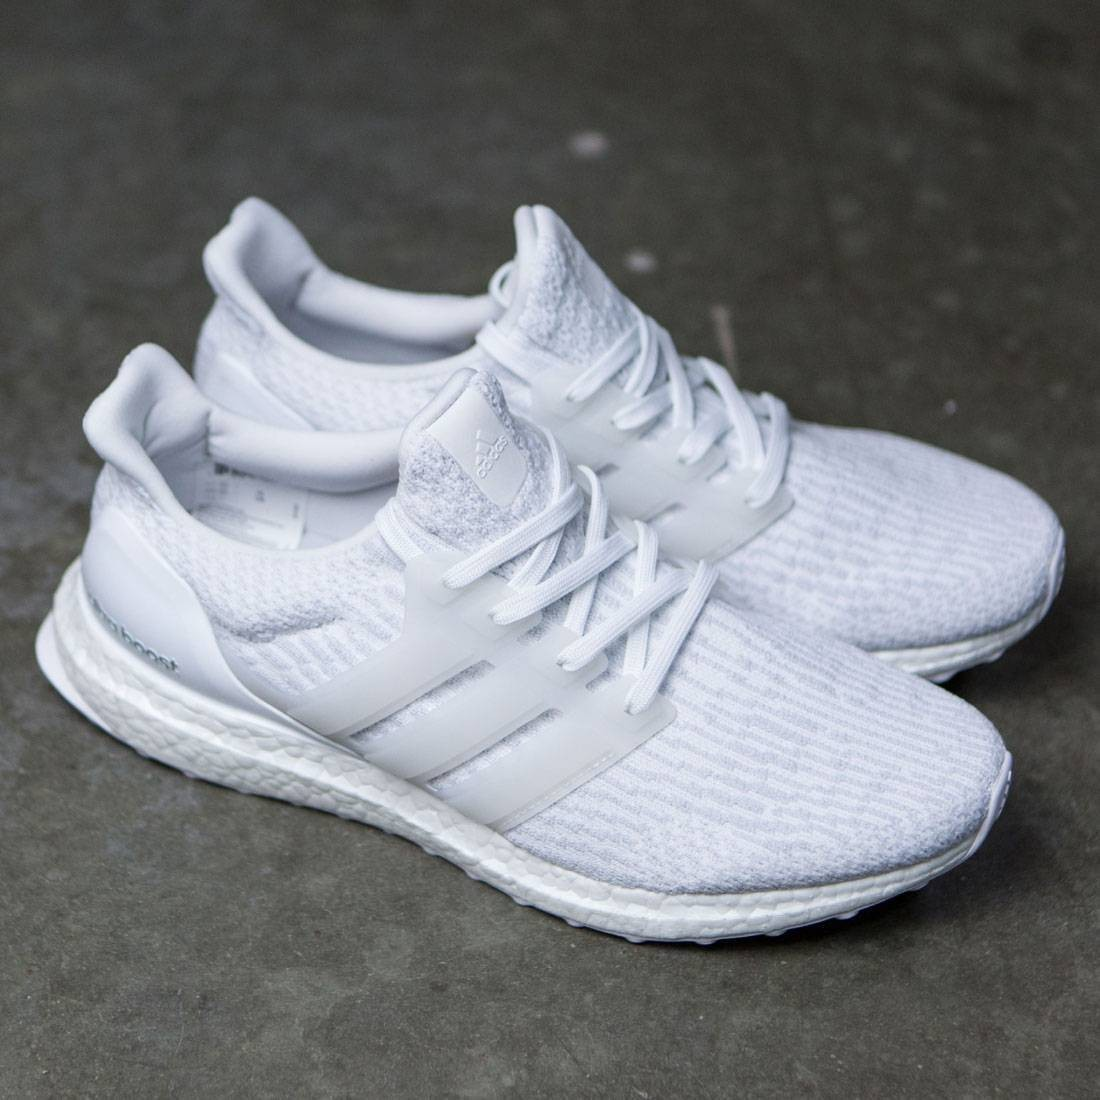 7f16911b2 Adidas Women Ultra Boost (white   footwear white   crystal white)